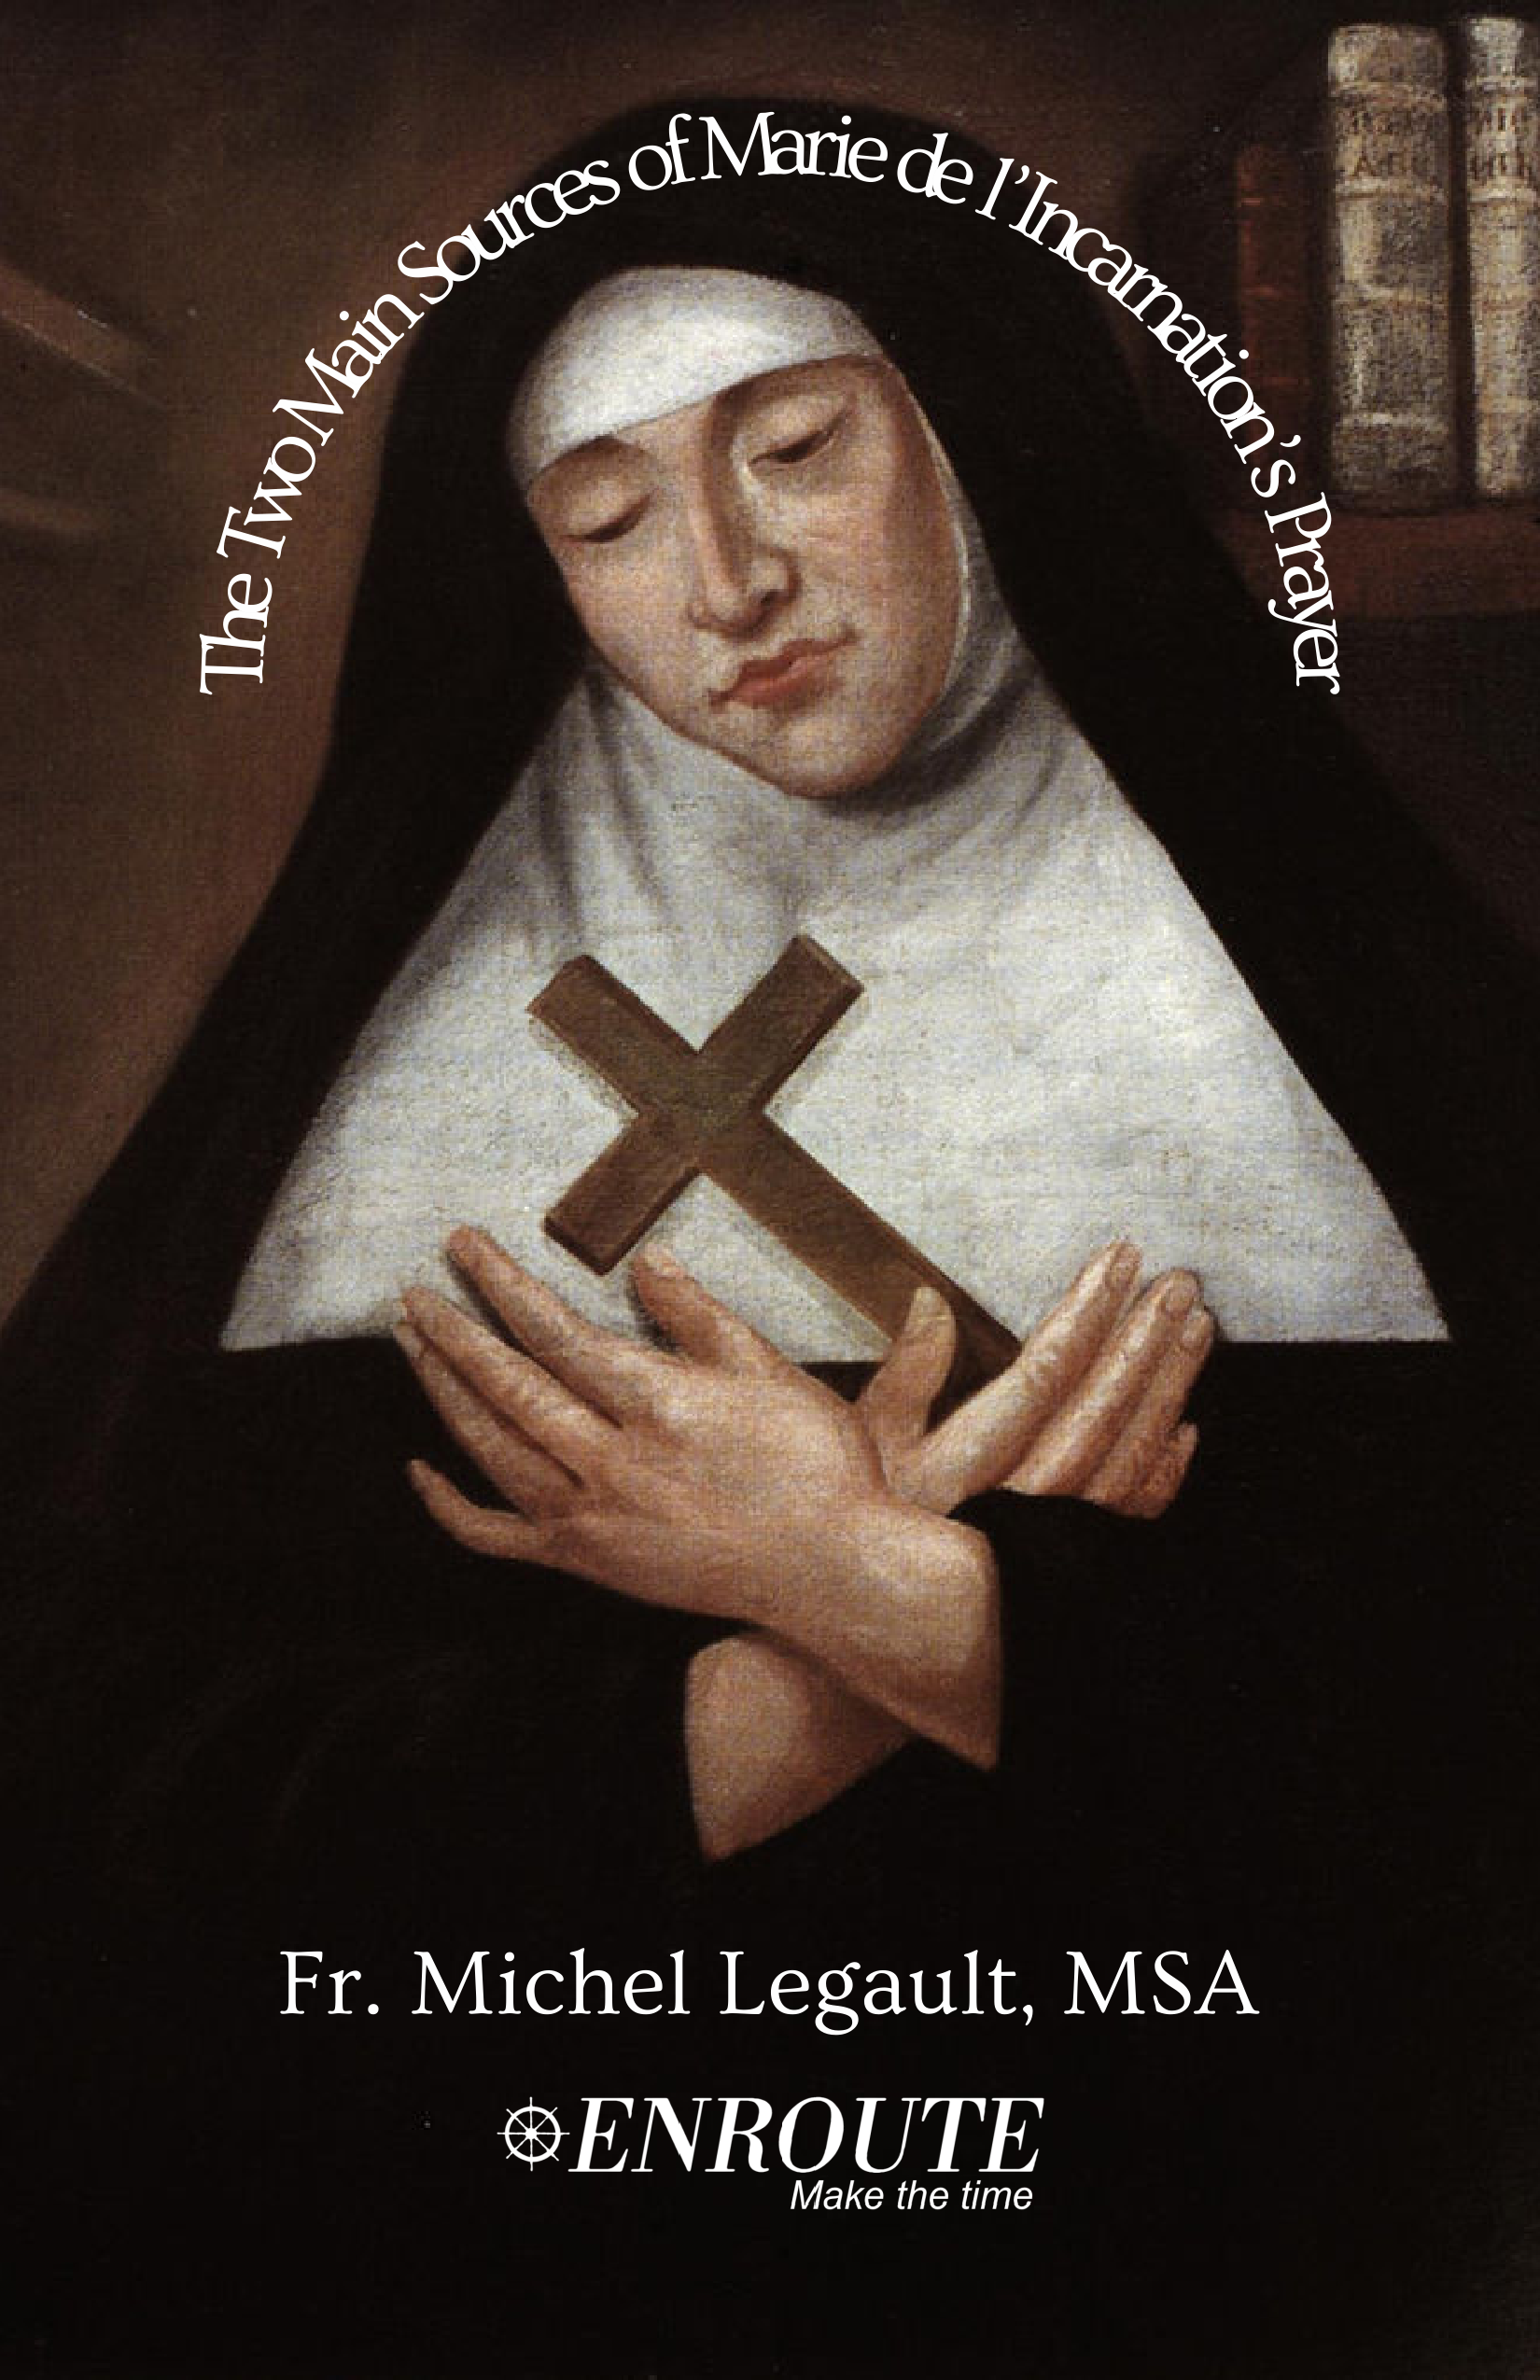 The Two Main Sources of Marie de l'Incarnation's Prayer by Fr. Michel Legault, MSA